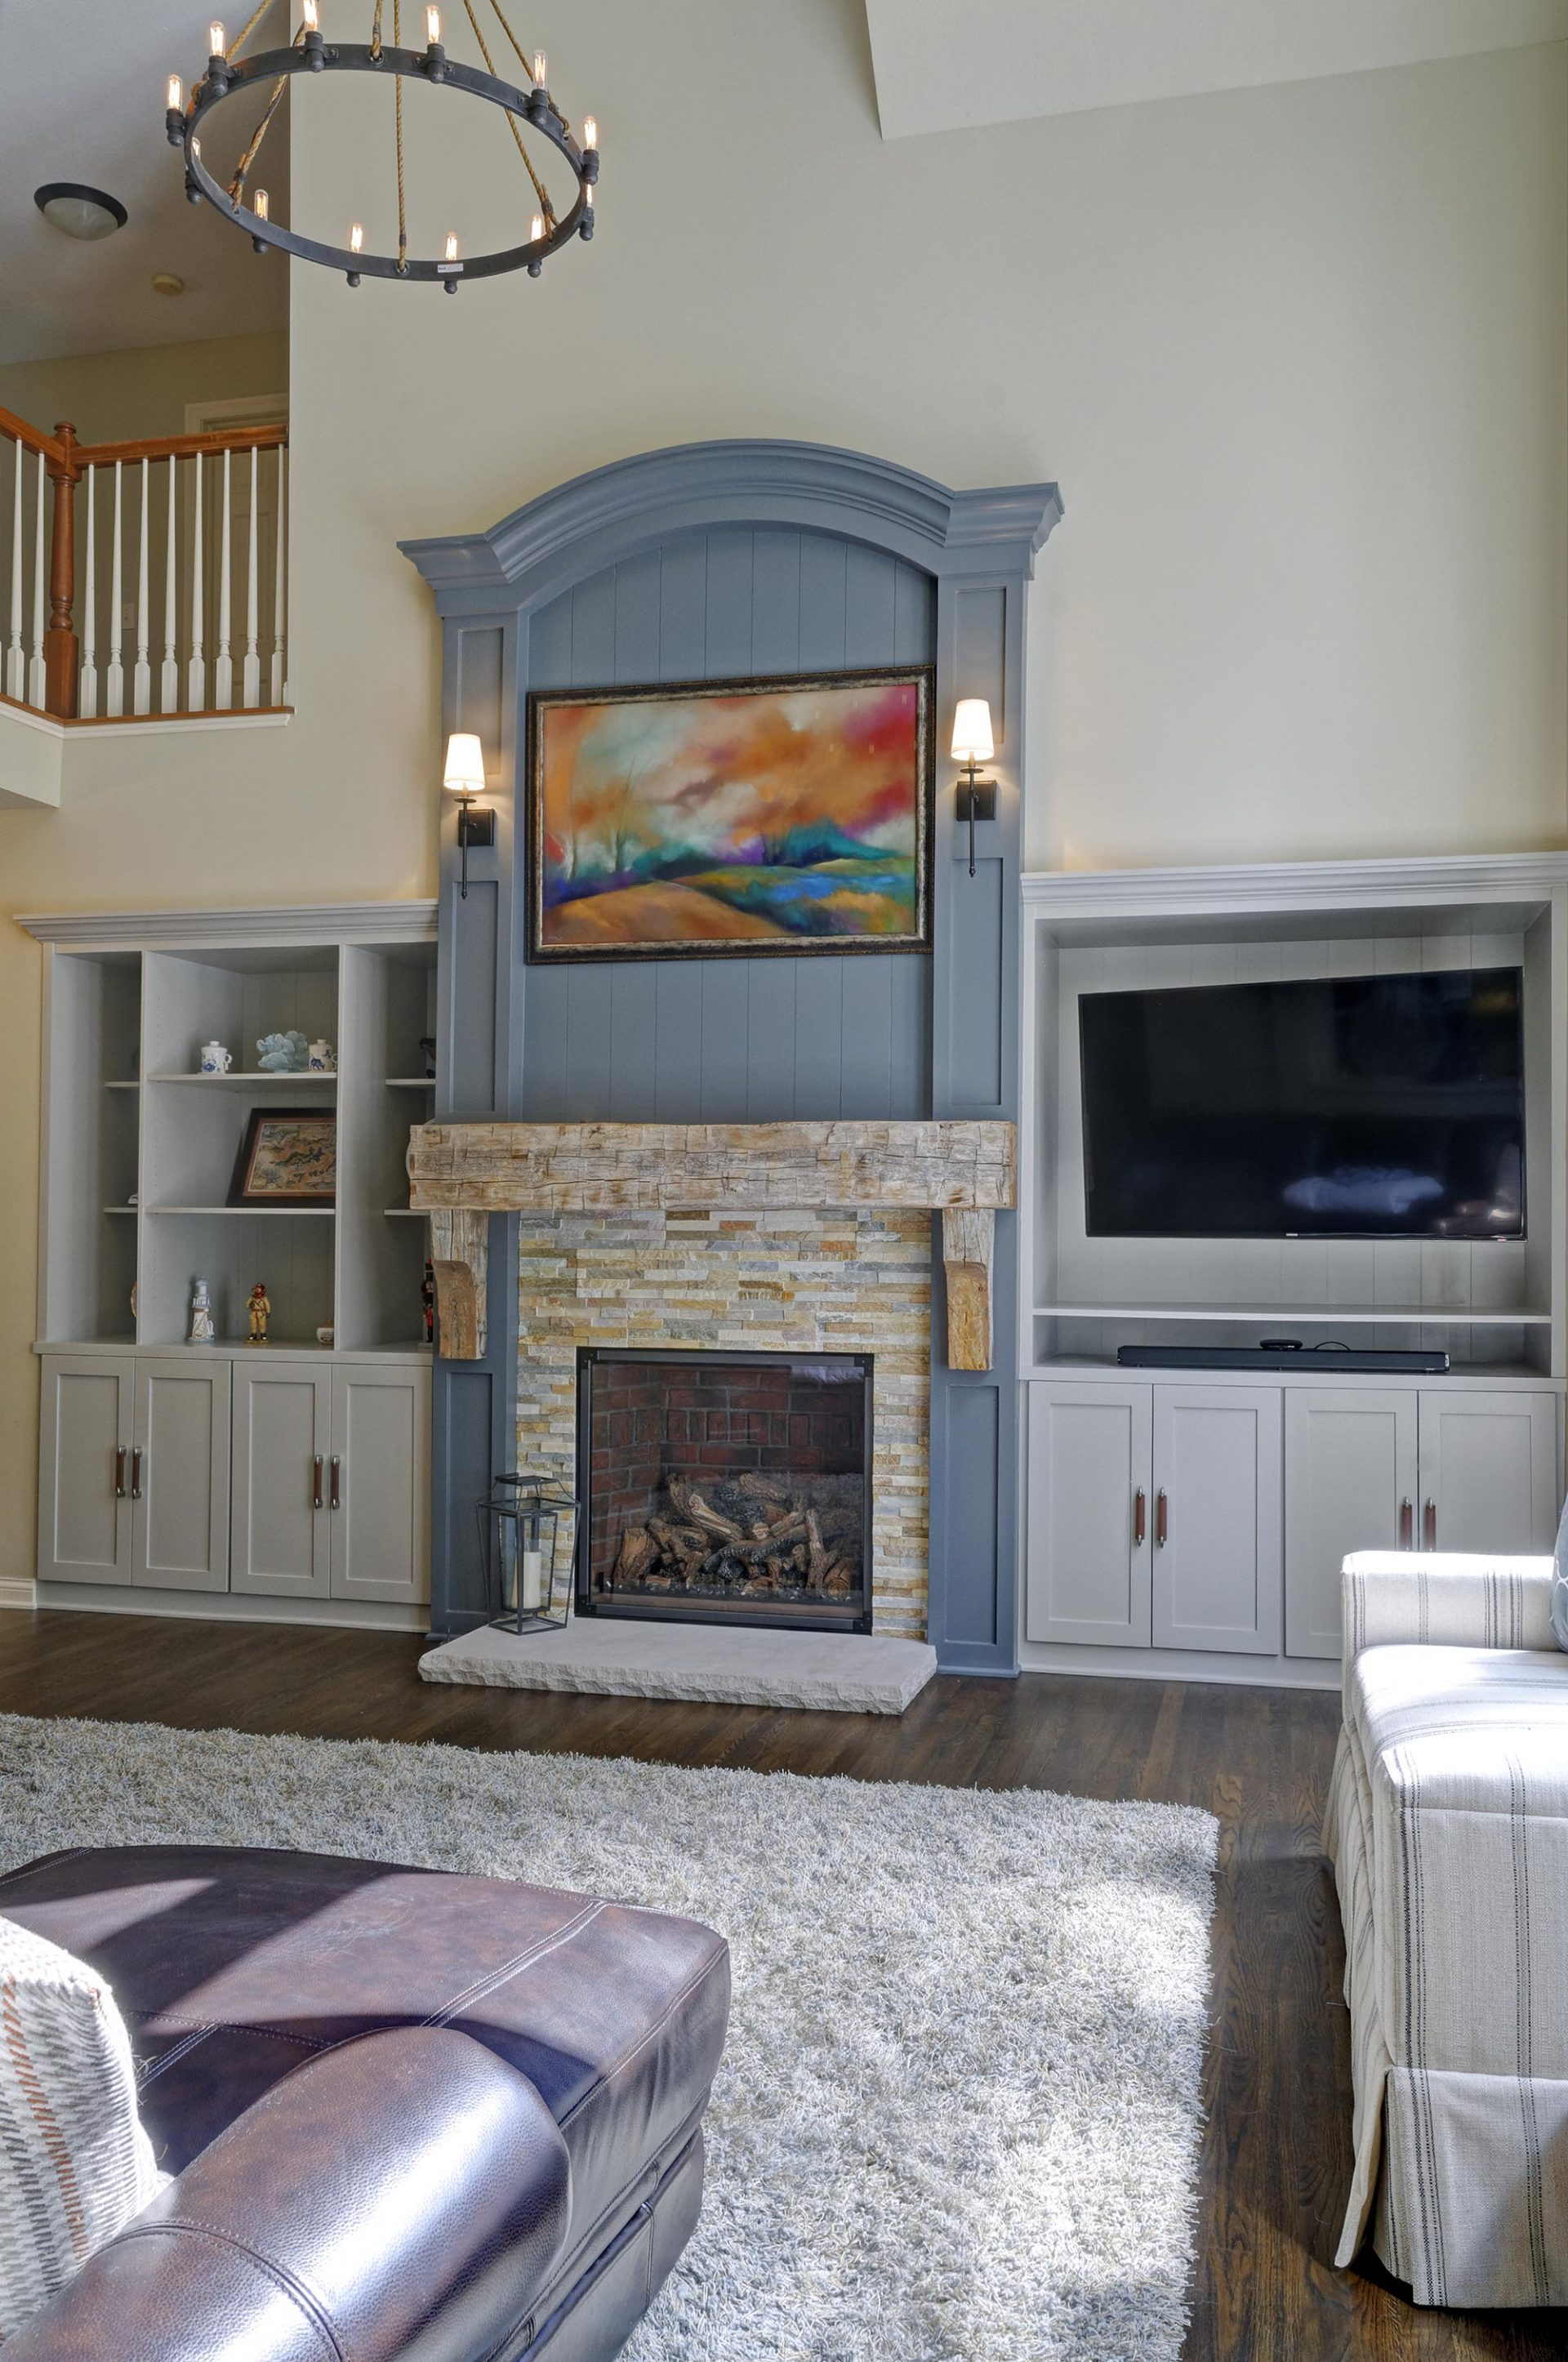 Fireplace, Living room, powell, Dave Fox, remodel, high ceilings, wood beam mantel, built ins, stacked stone